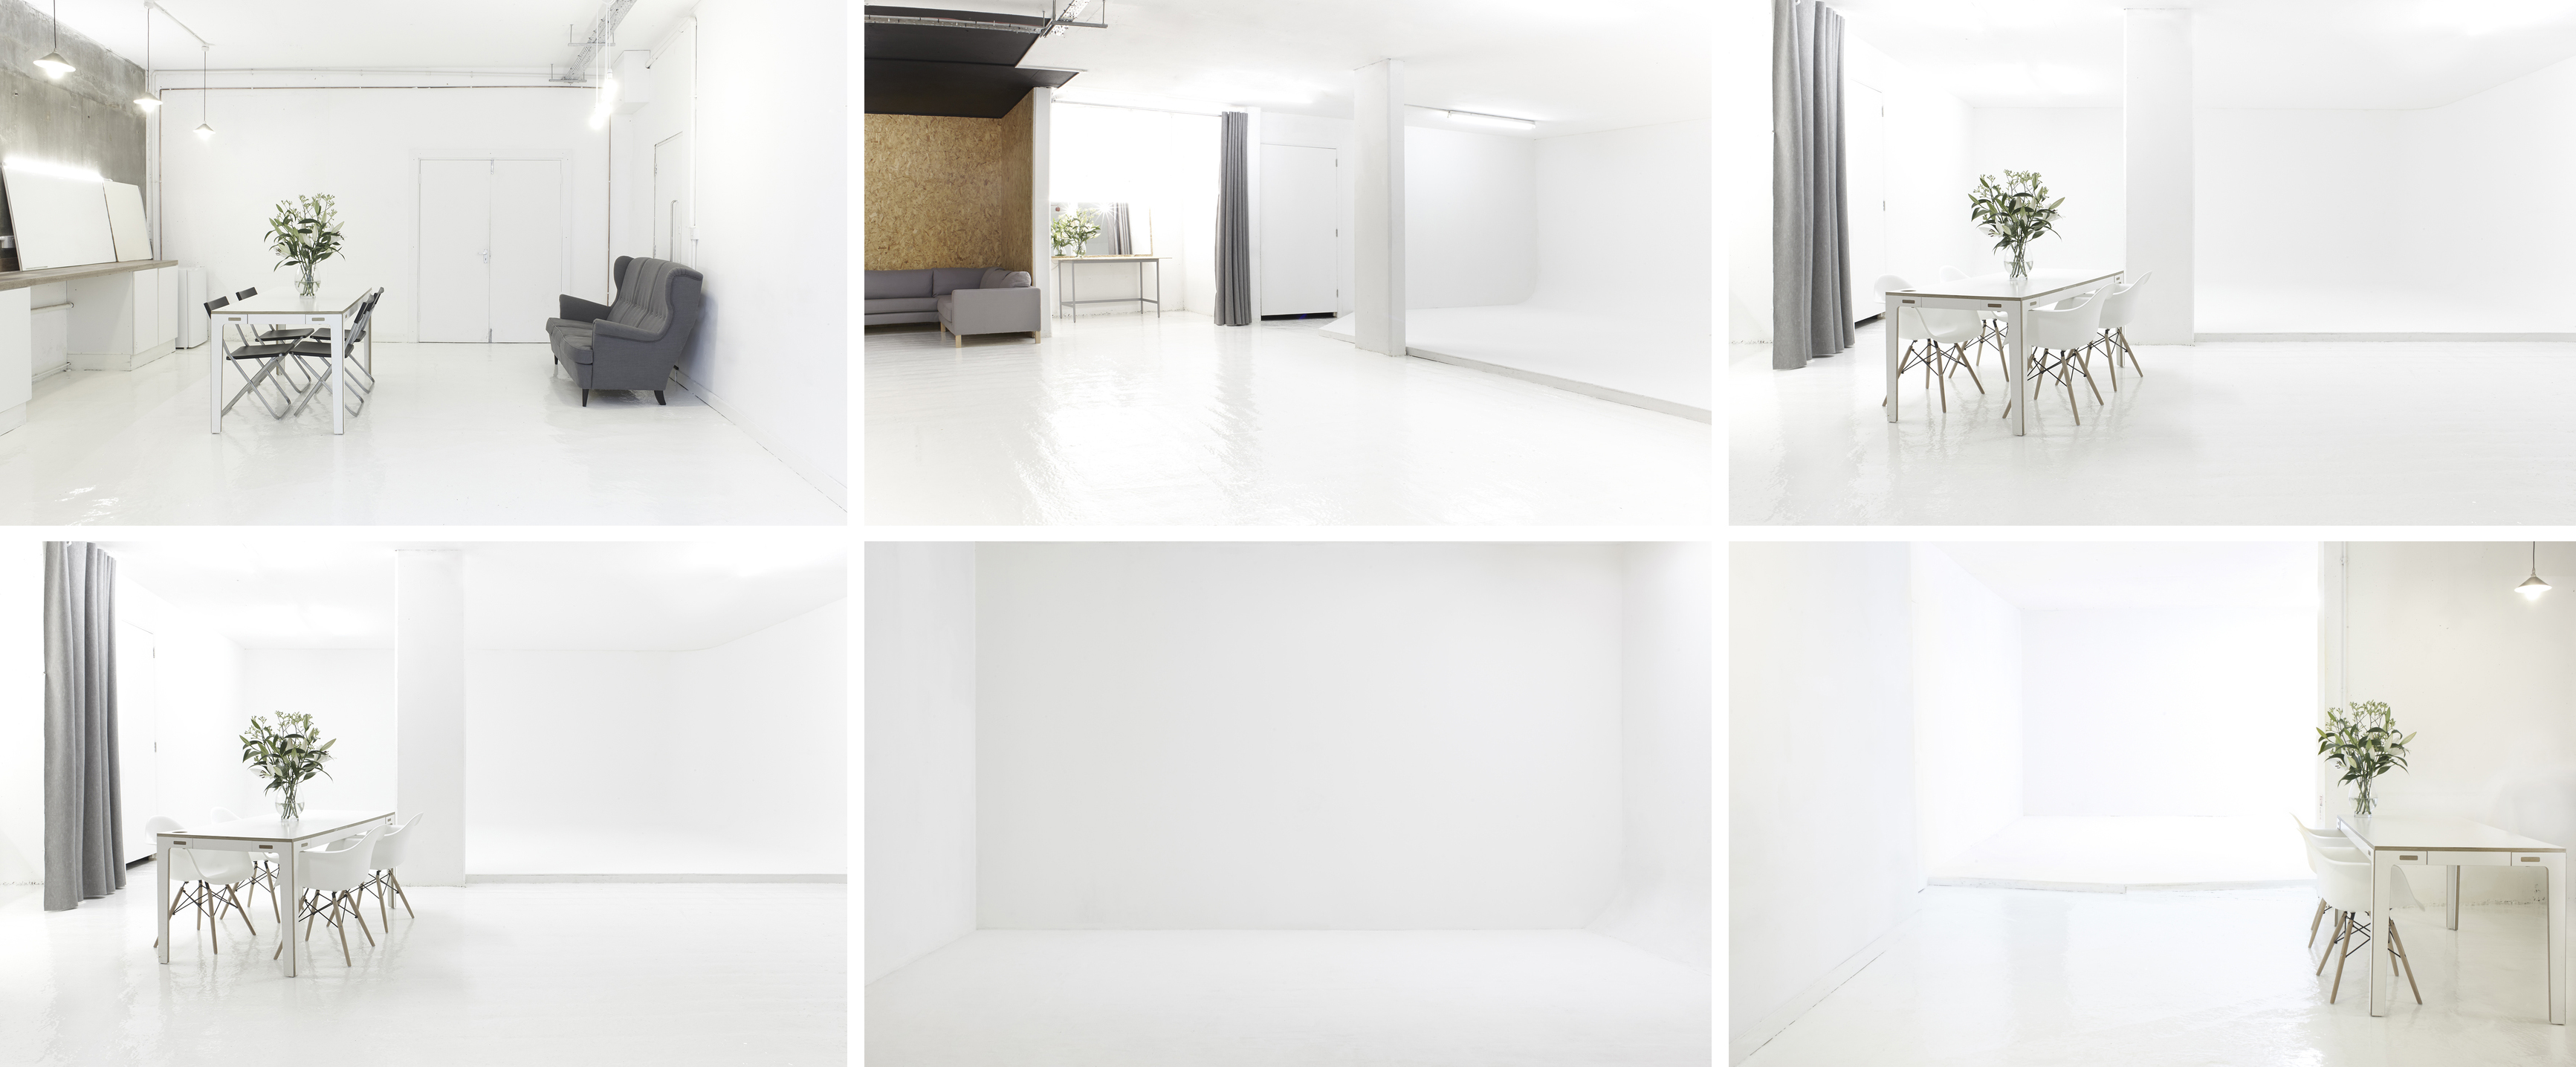 photography studio hire london